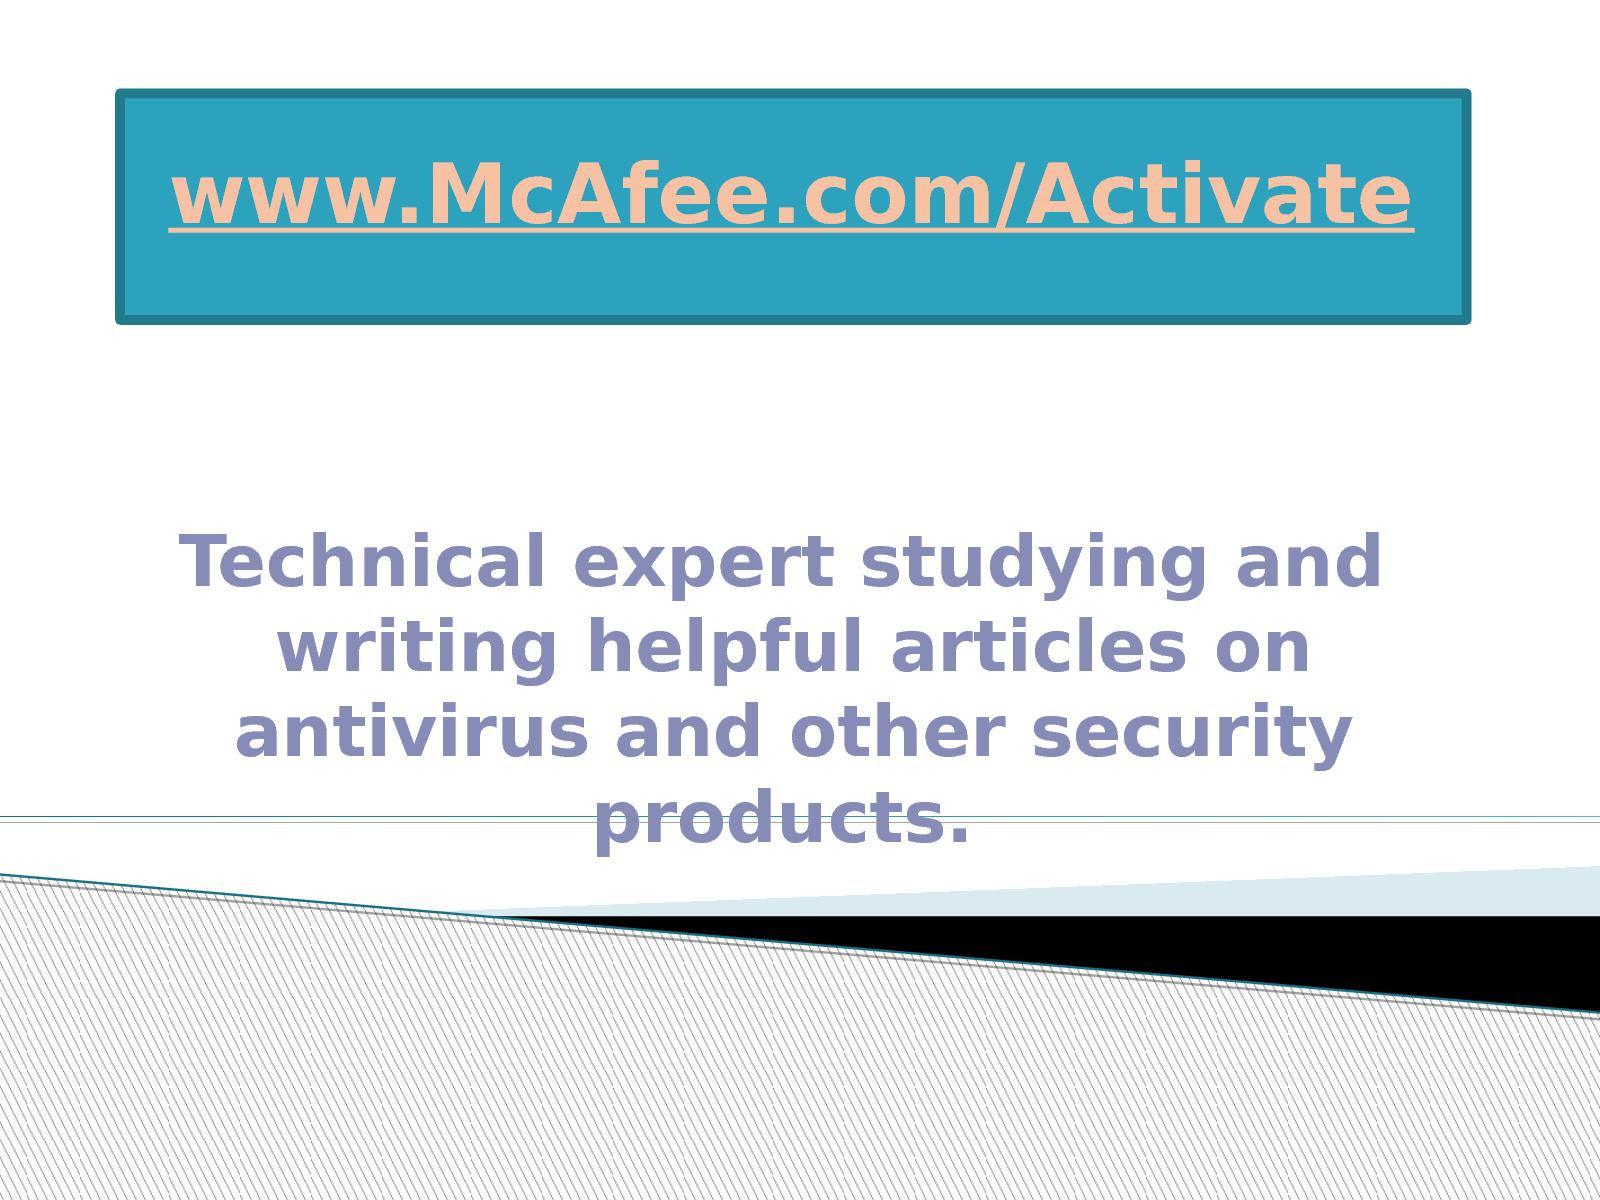 Calaméo - Visit www mcafee com/activate for instant McAfee